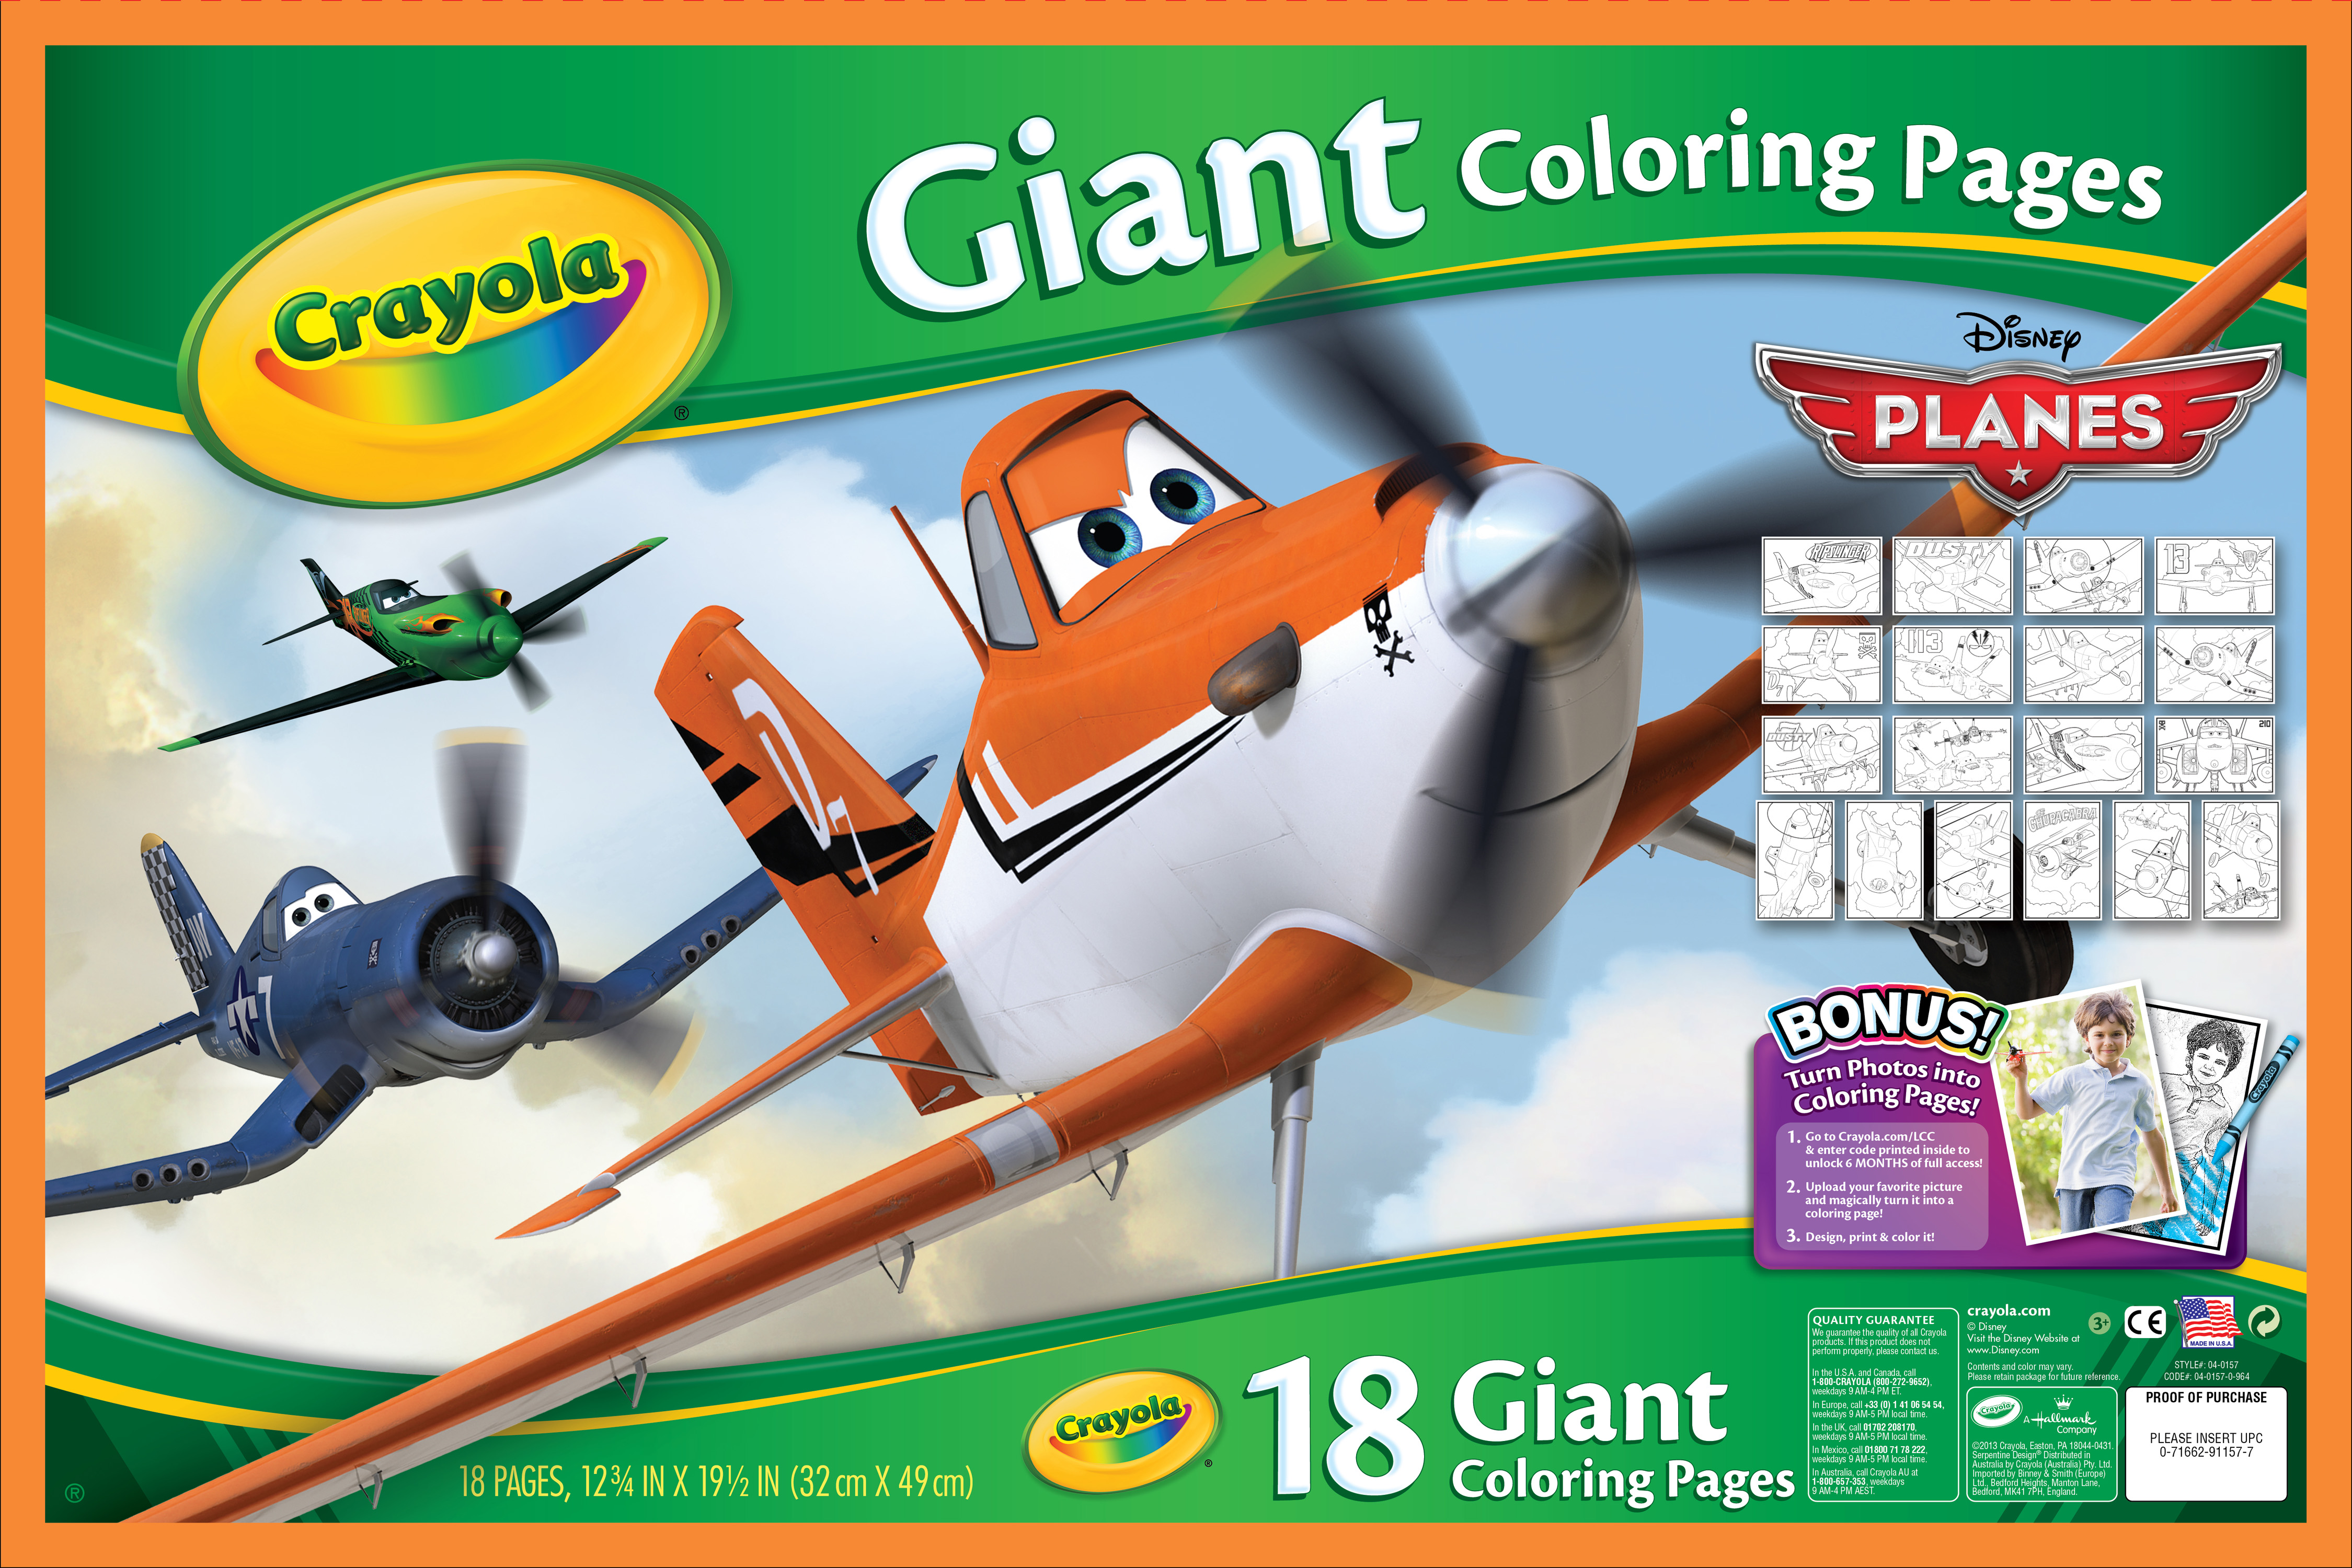 Giant Coloring Pages Case | Crayola